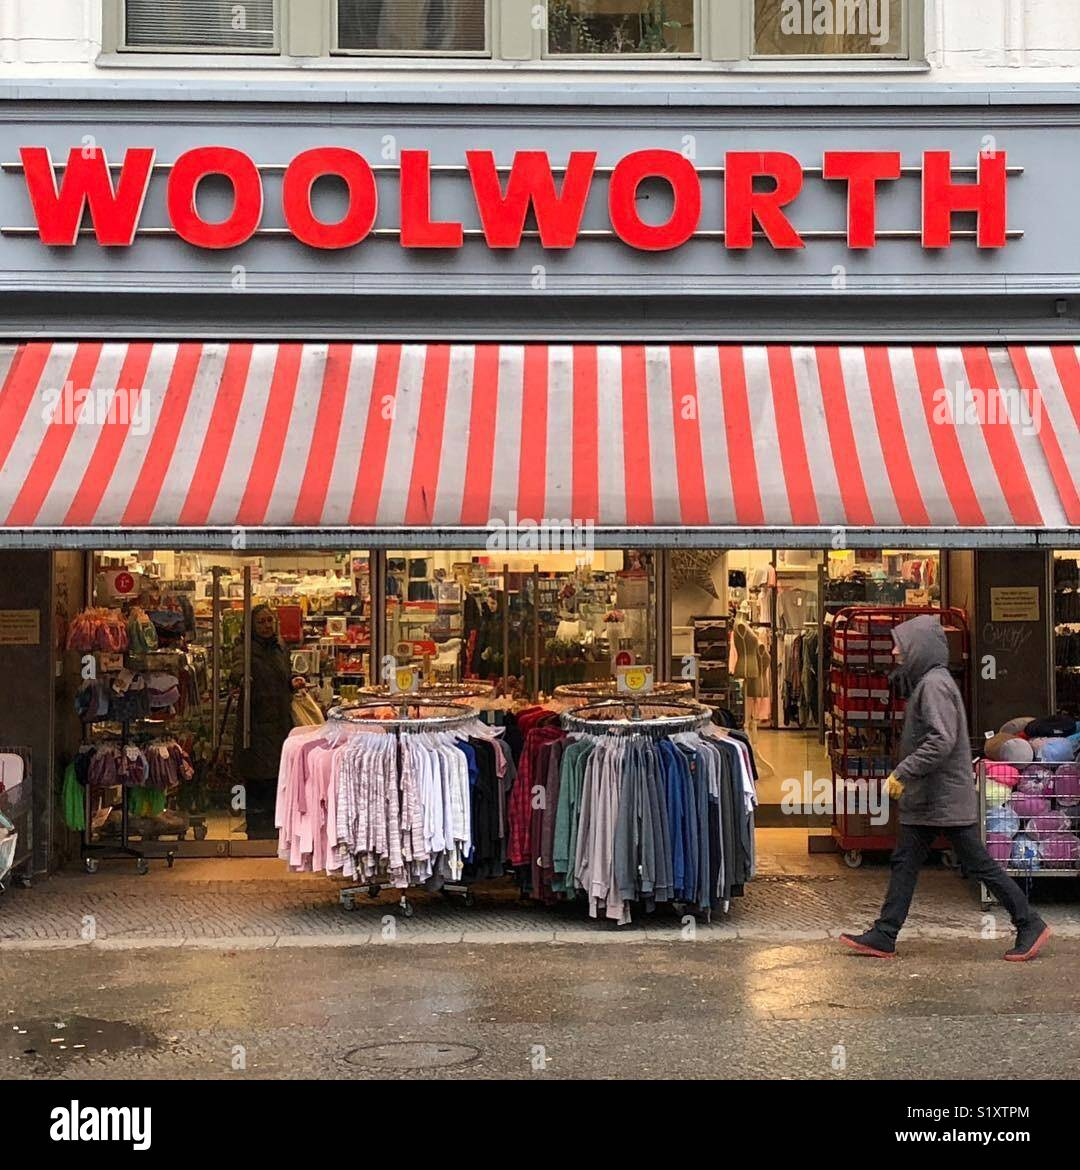 Un Woolworth Store a Berlino, Germania. Immagini Stock